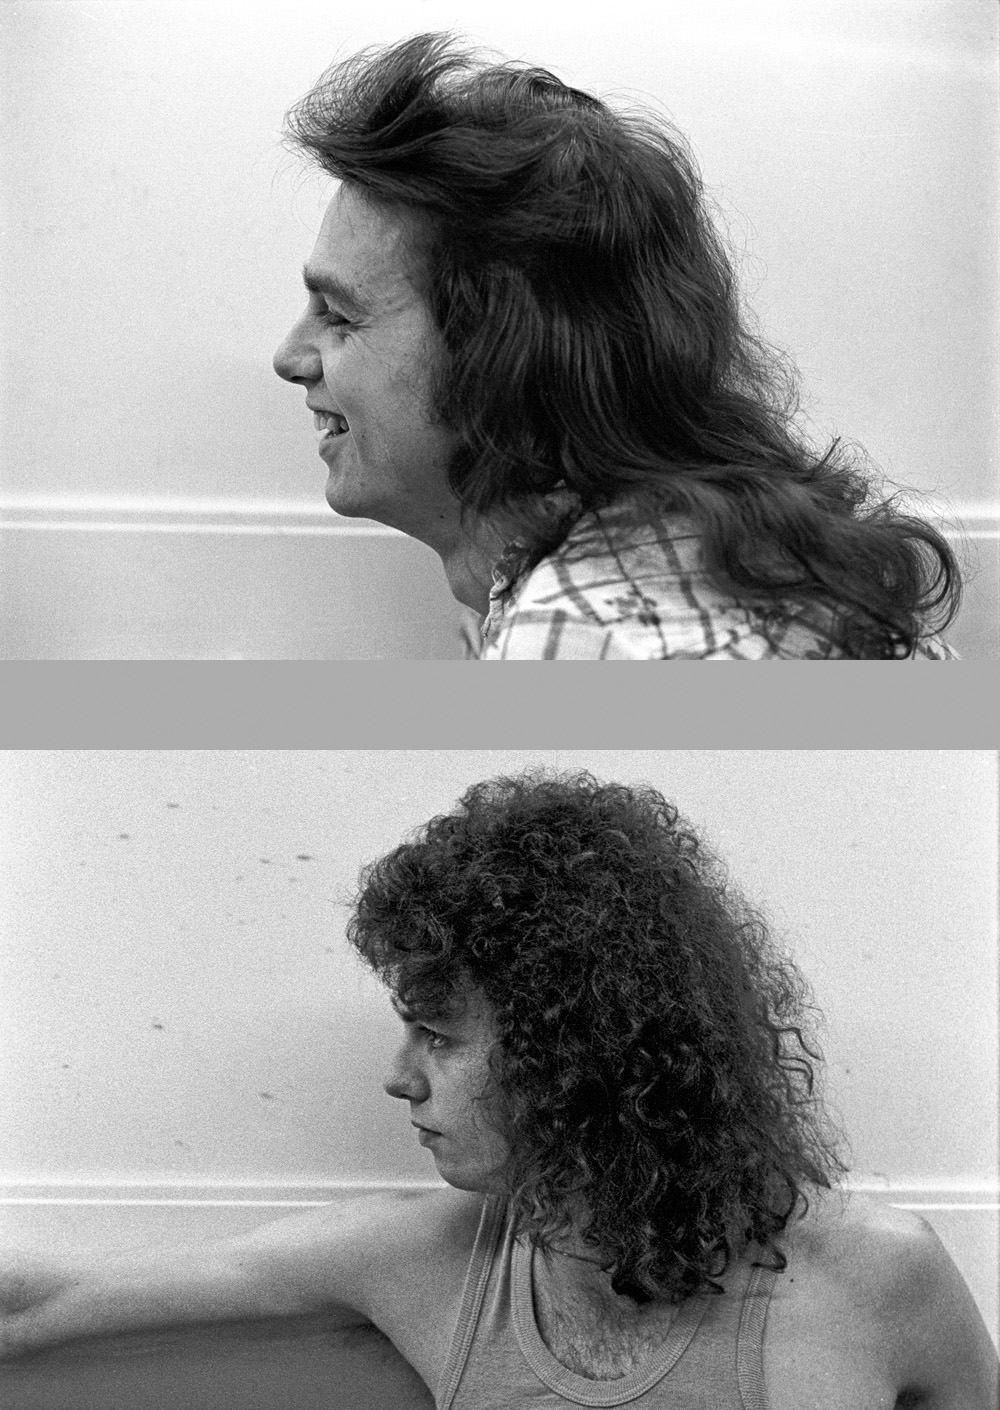 Steve Biller, Lorton, Virginia - May 1976   Before and After Haircut